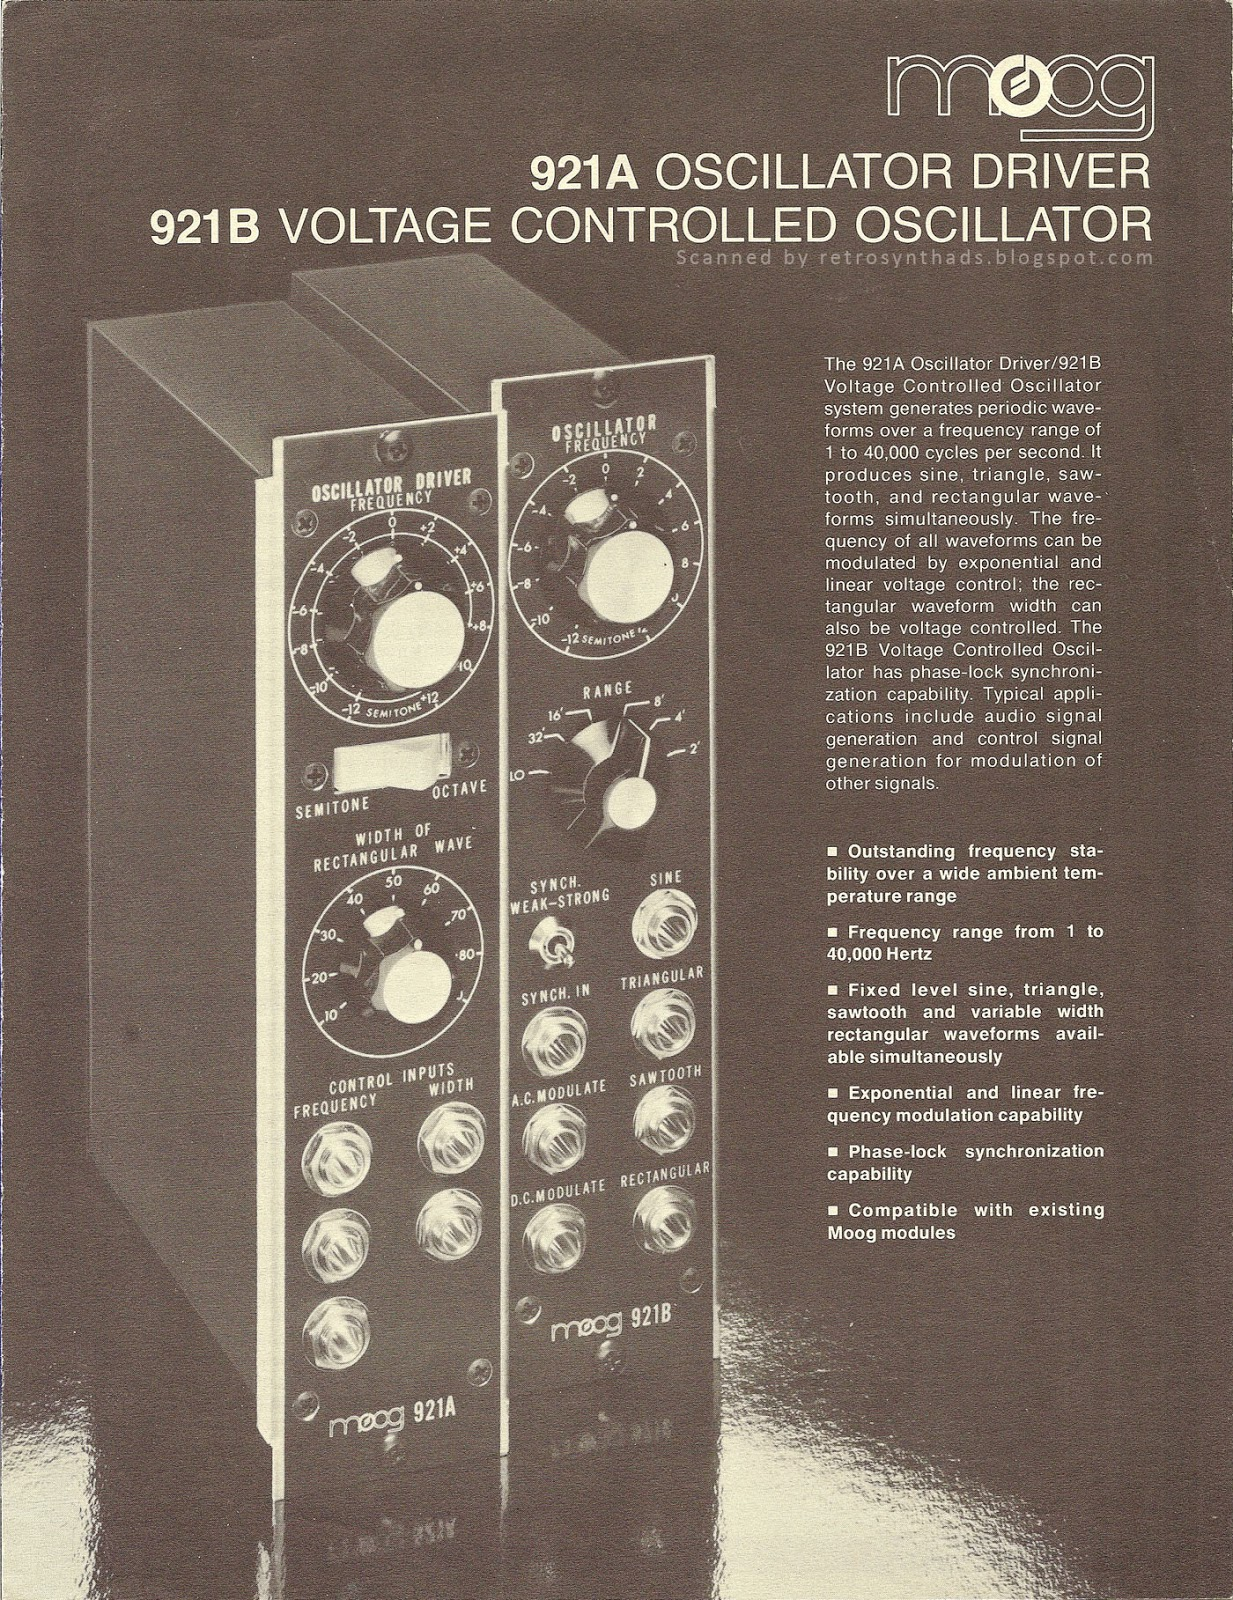 Retro Synth Ads Moog 921a Oscillator Driver 921b Voltage Controlled Oscillatorcircuit Signalprocessing Brochure 1976